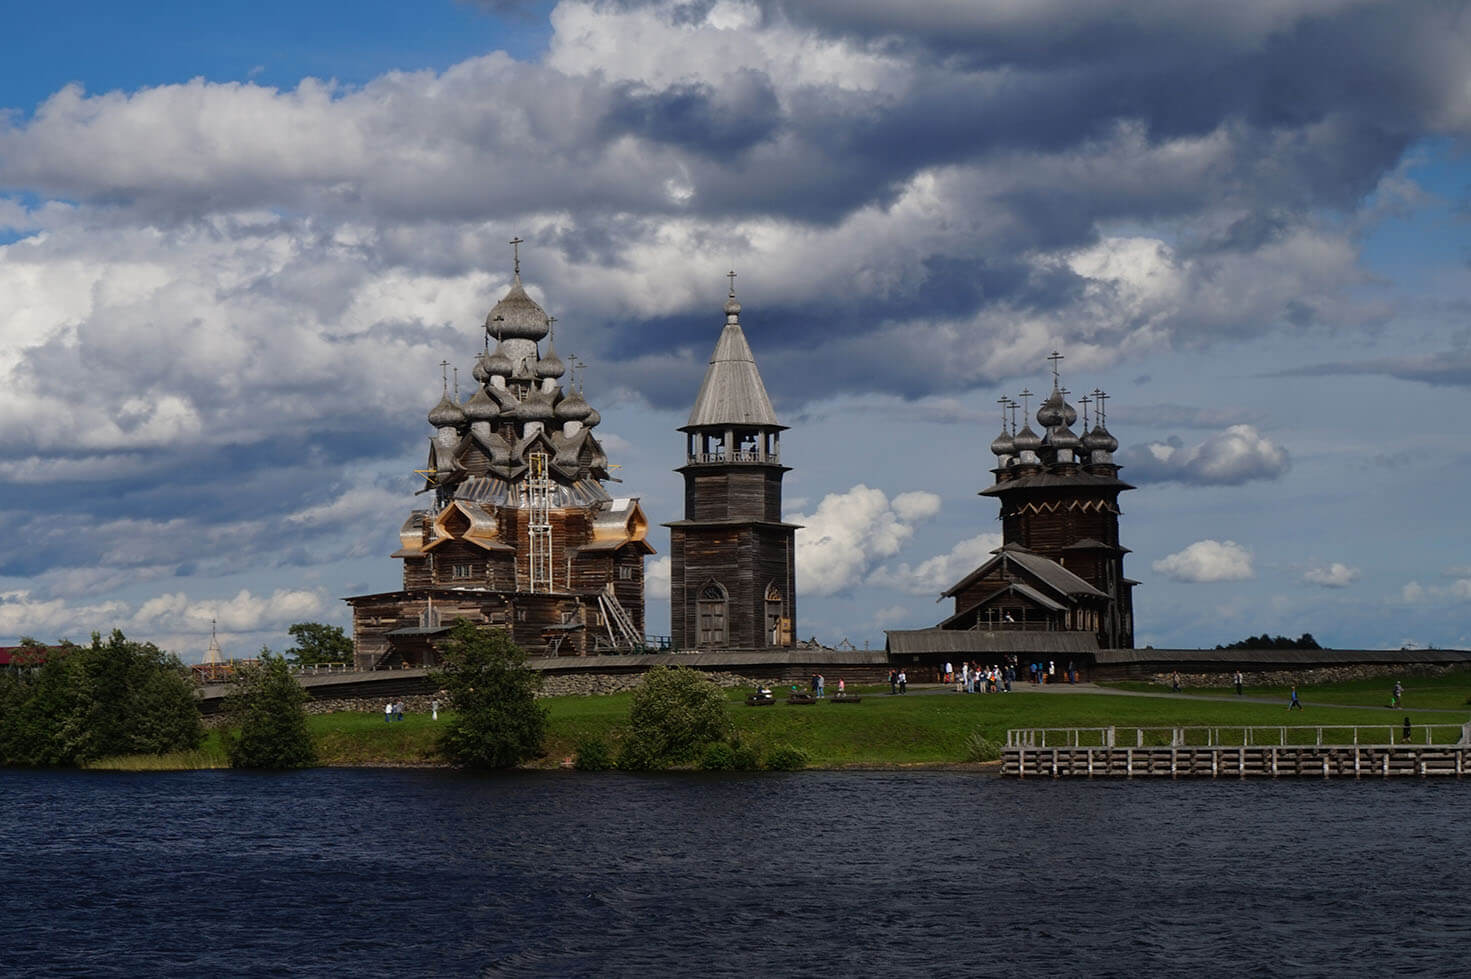 View of Kizhi Pogost from the lake